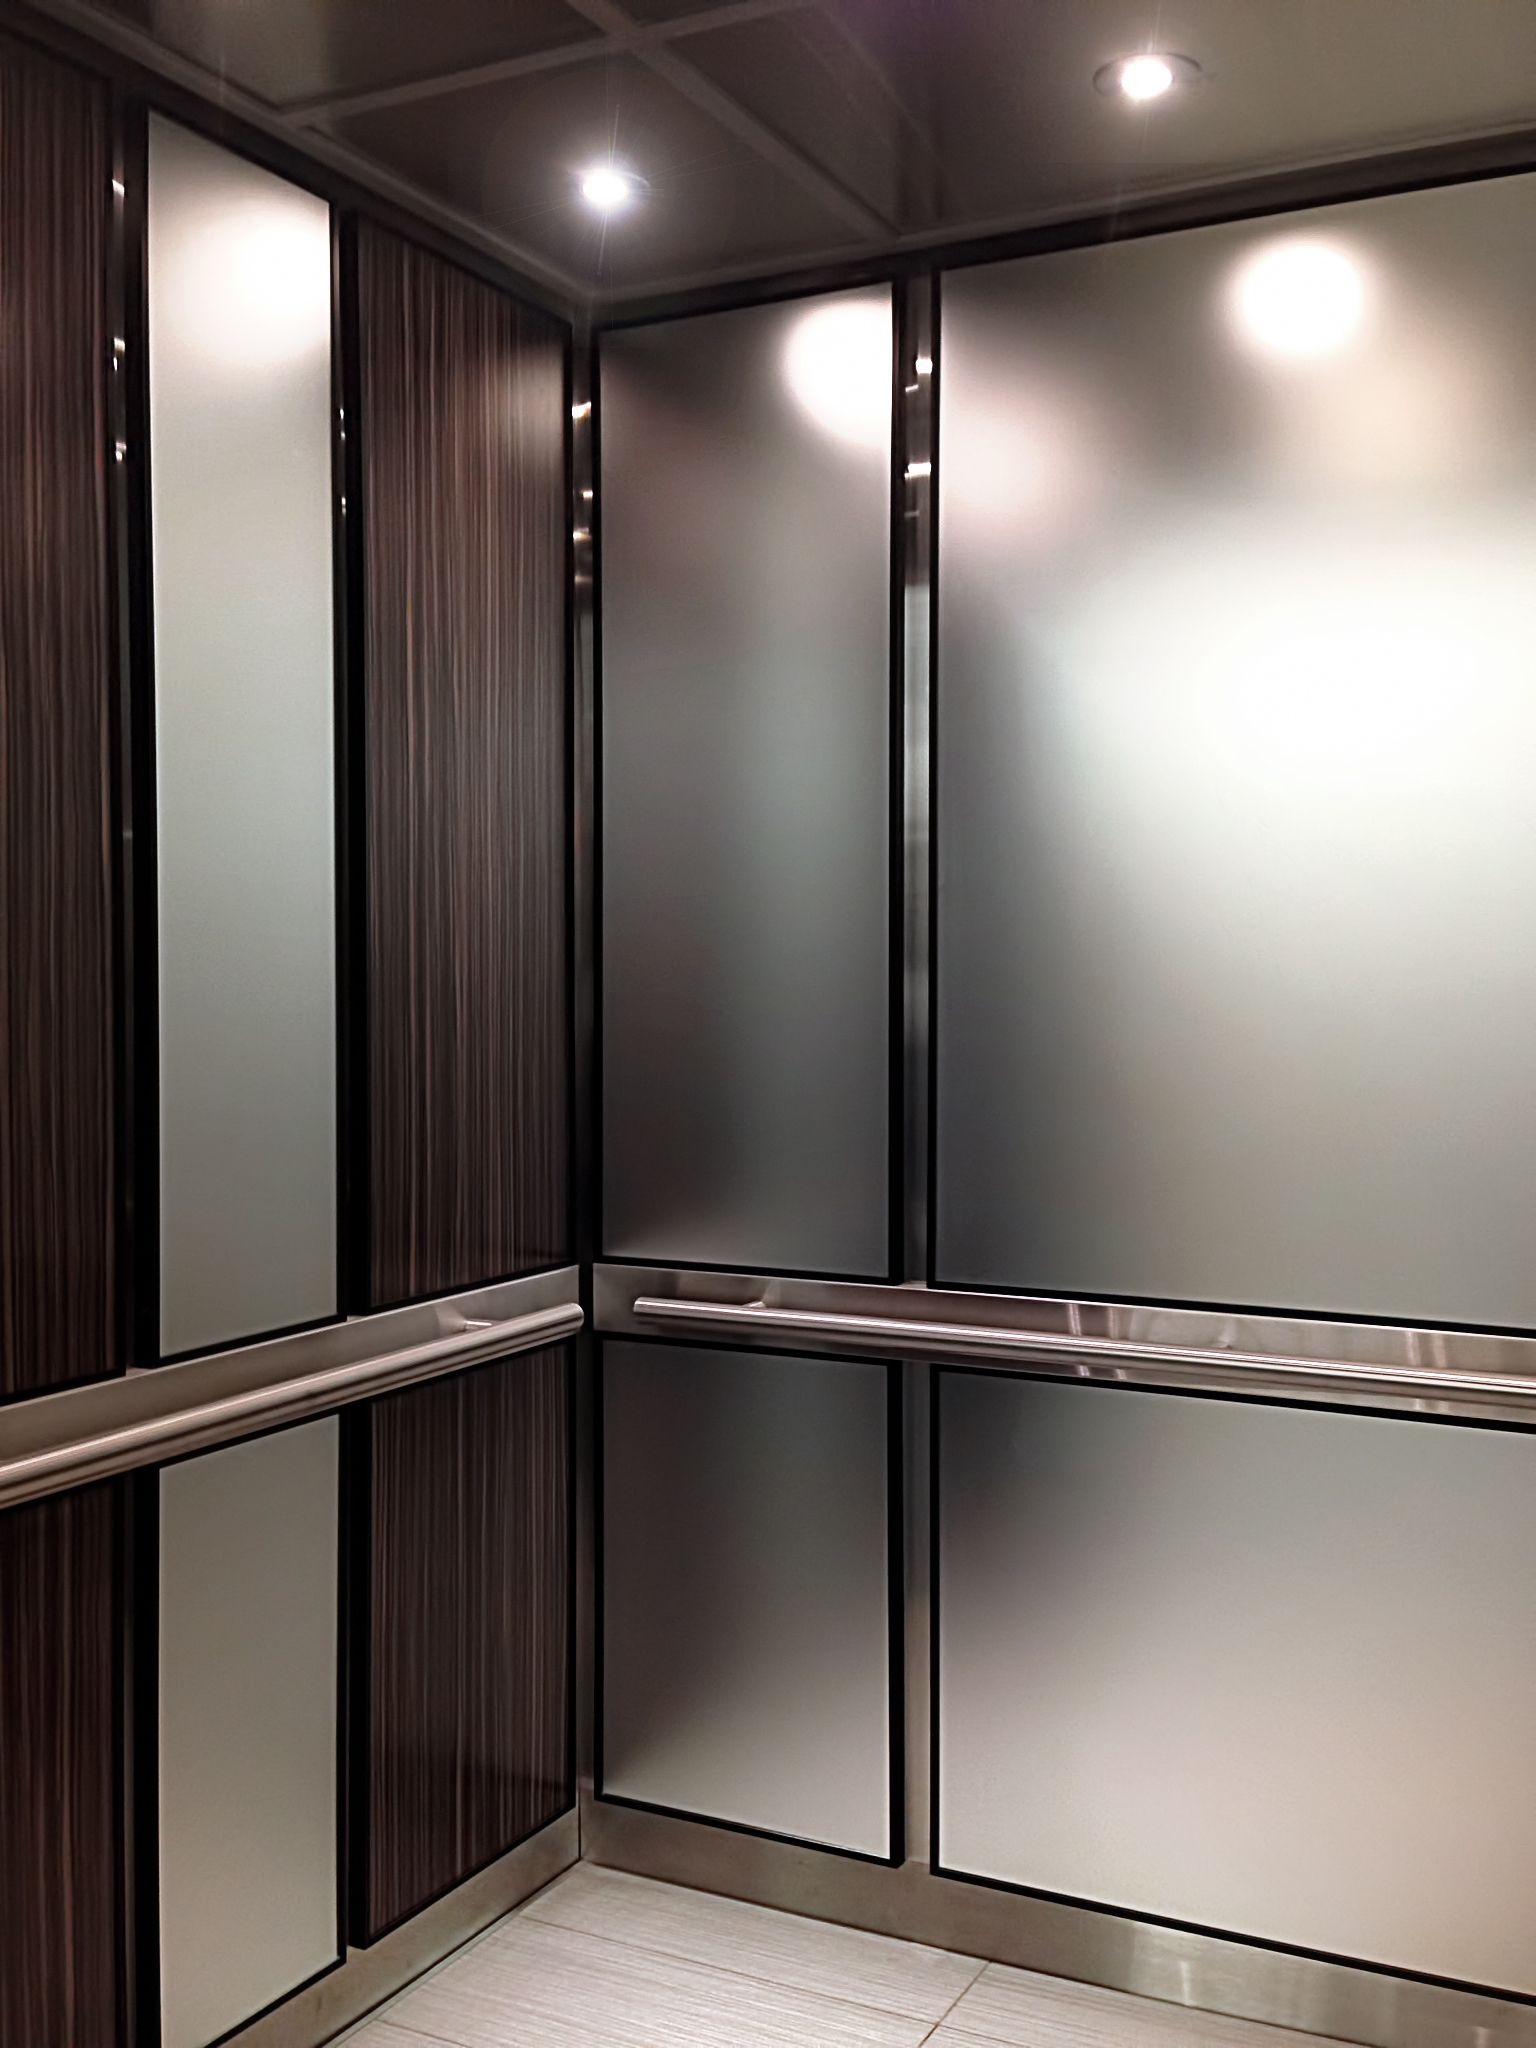 Pin By Premier Elevator On Elevator Interior Design